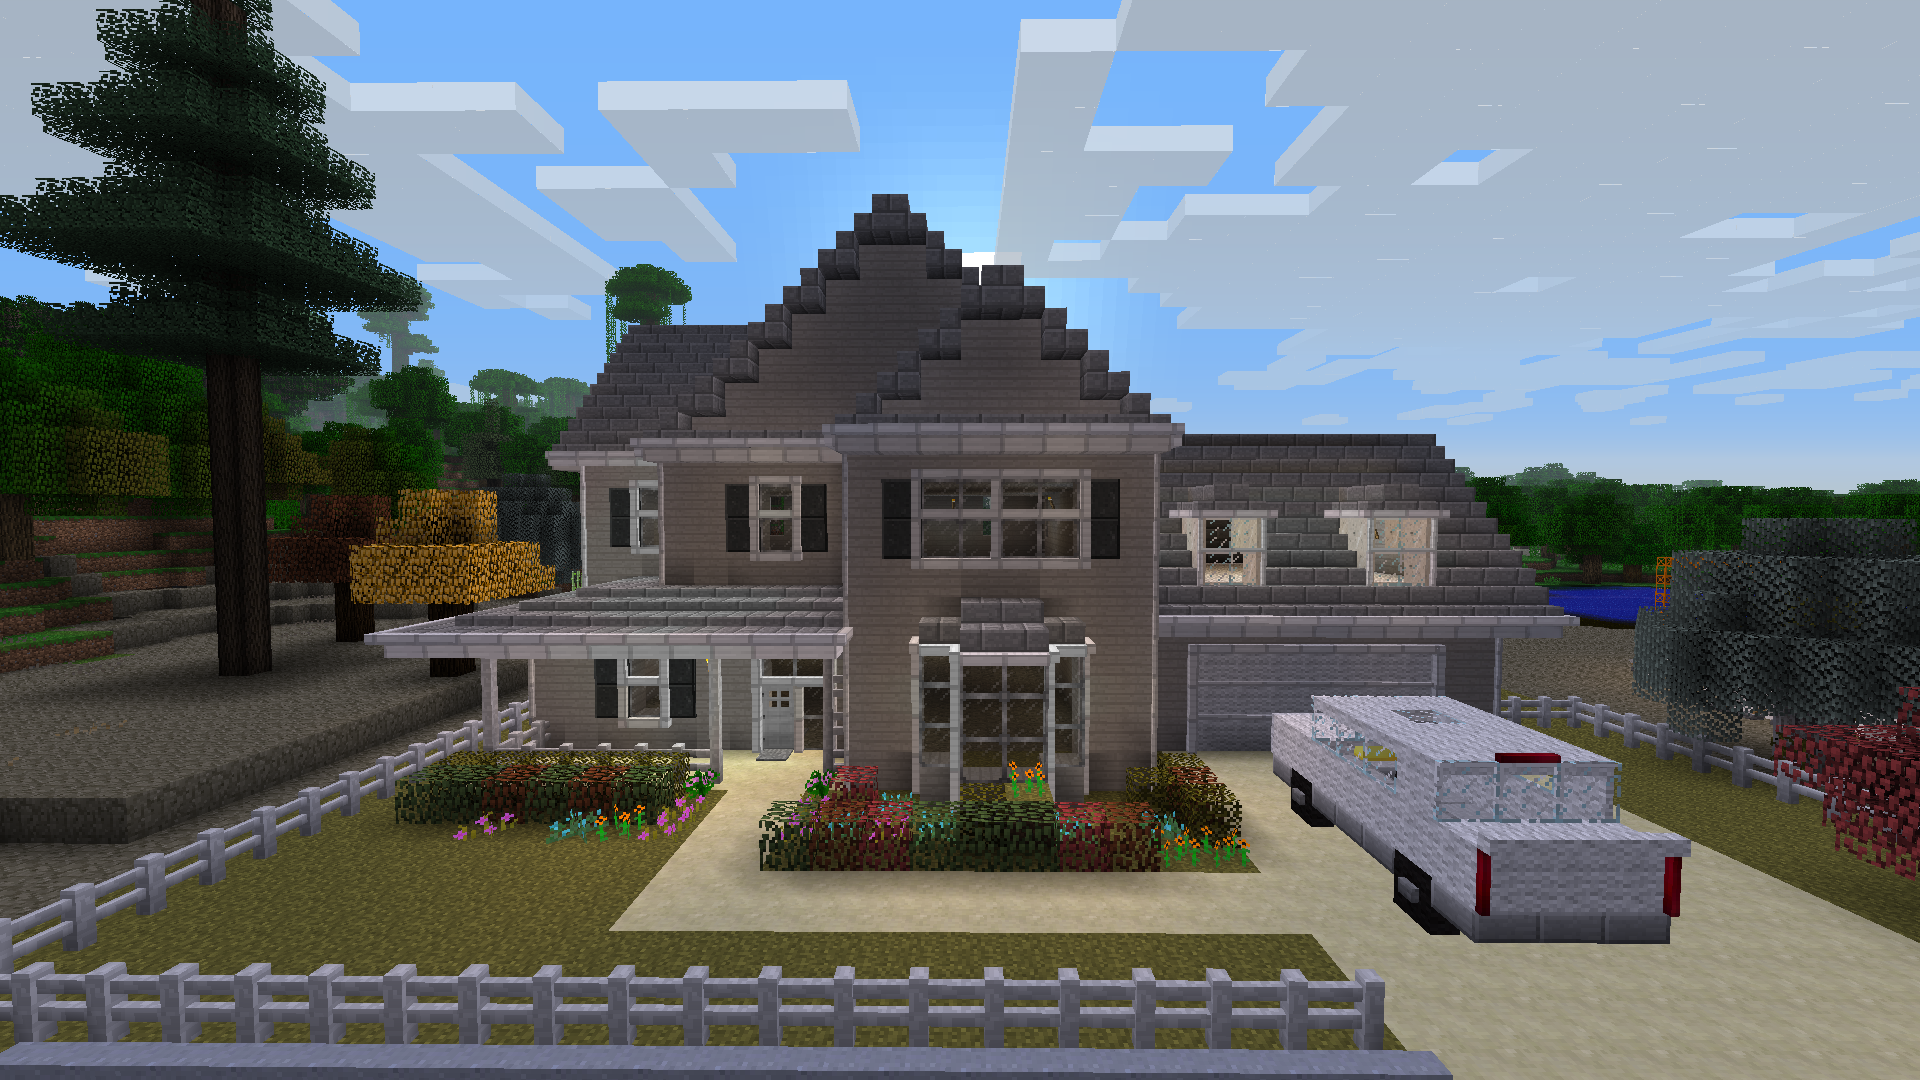 Epic minecraft house done in the style of a treehouse description from i - Minecraft home decor photos ...